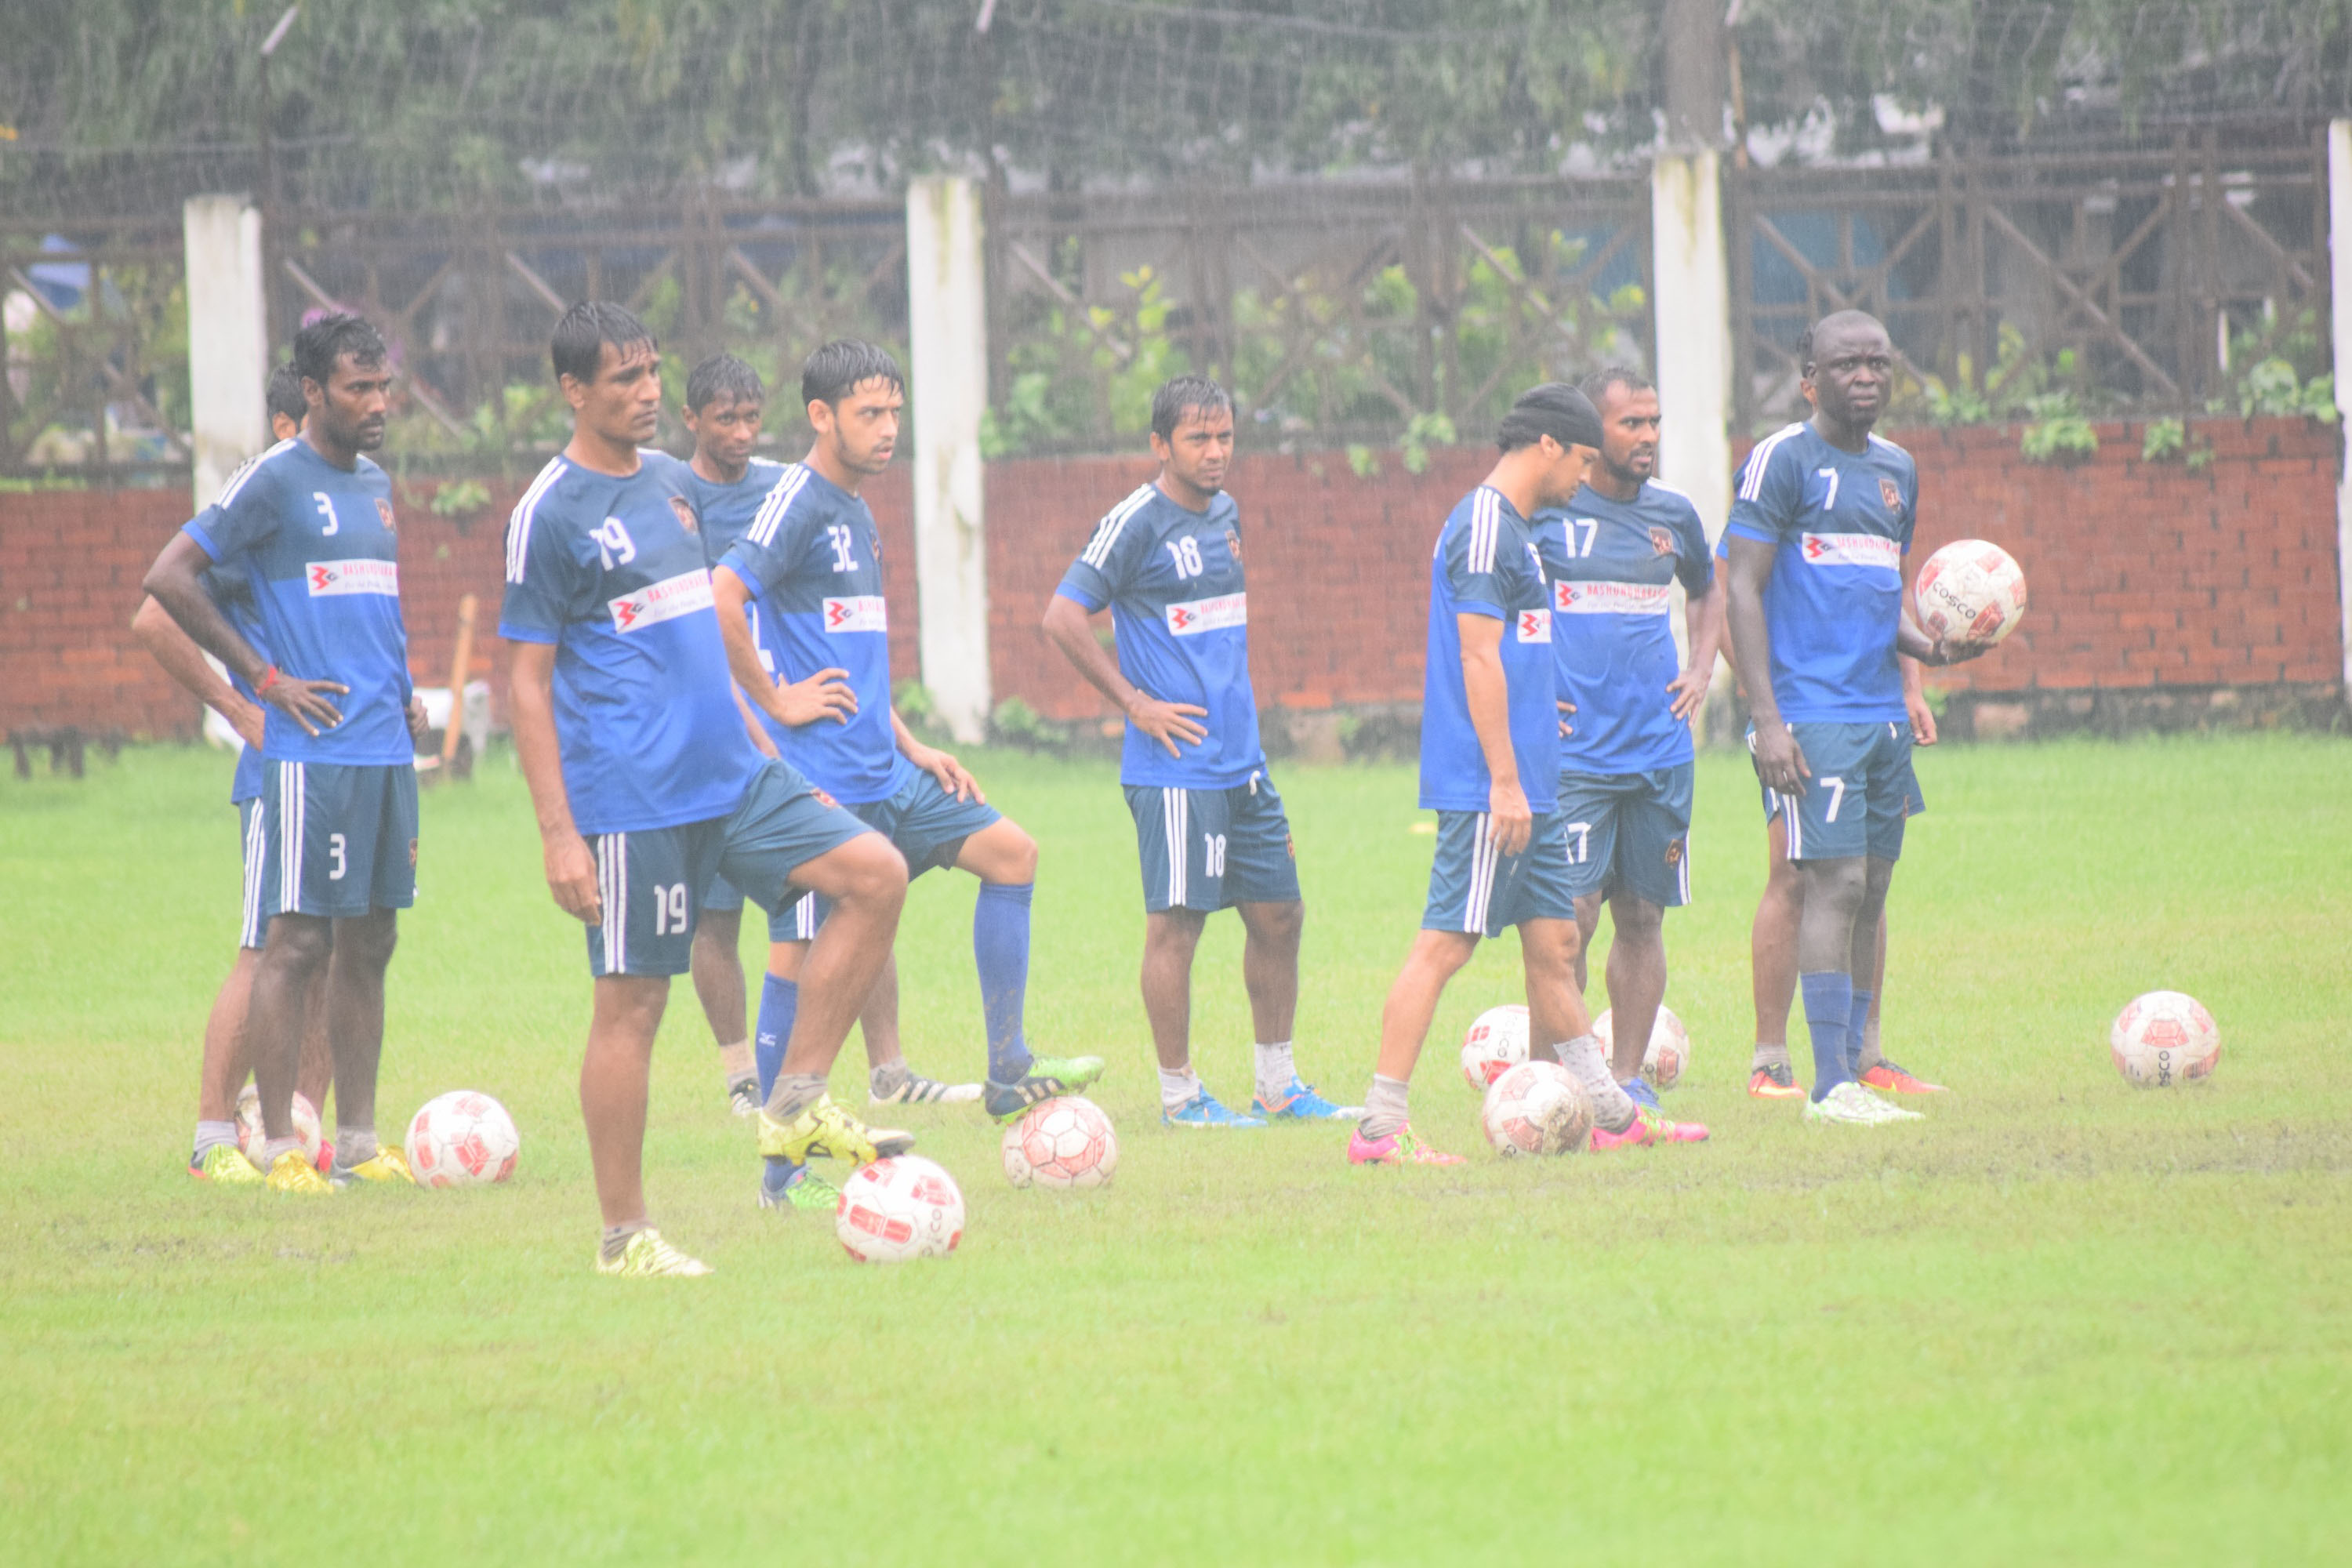 Players of Sheikh Jamal Dhanmondi Club Limited during their practice session at the Sheikh Jamal Dhanmondi Club Ground on Saturday.